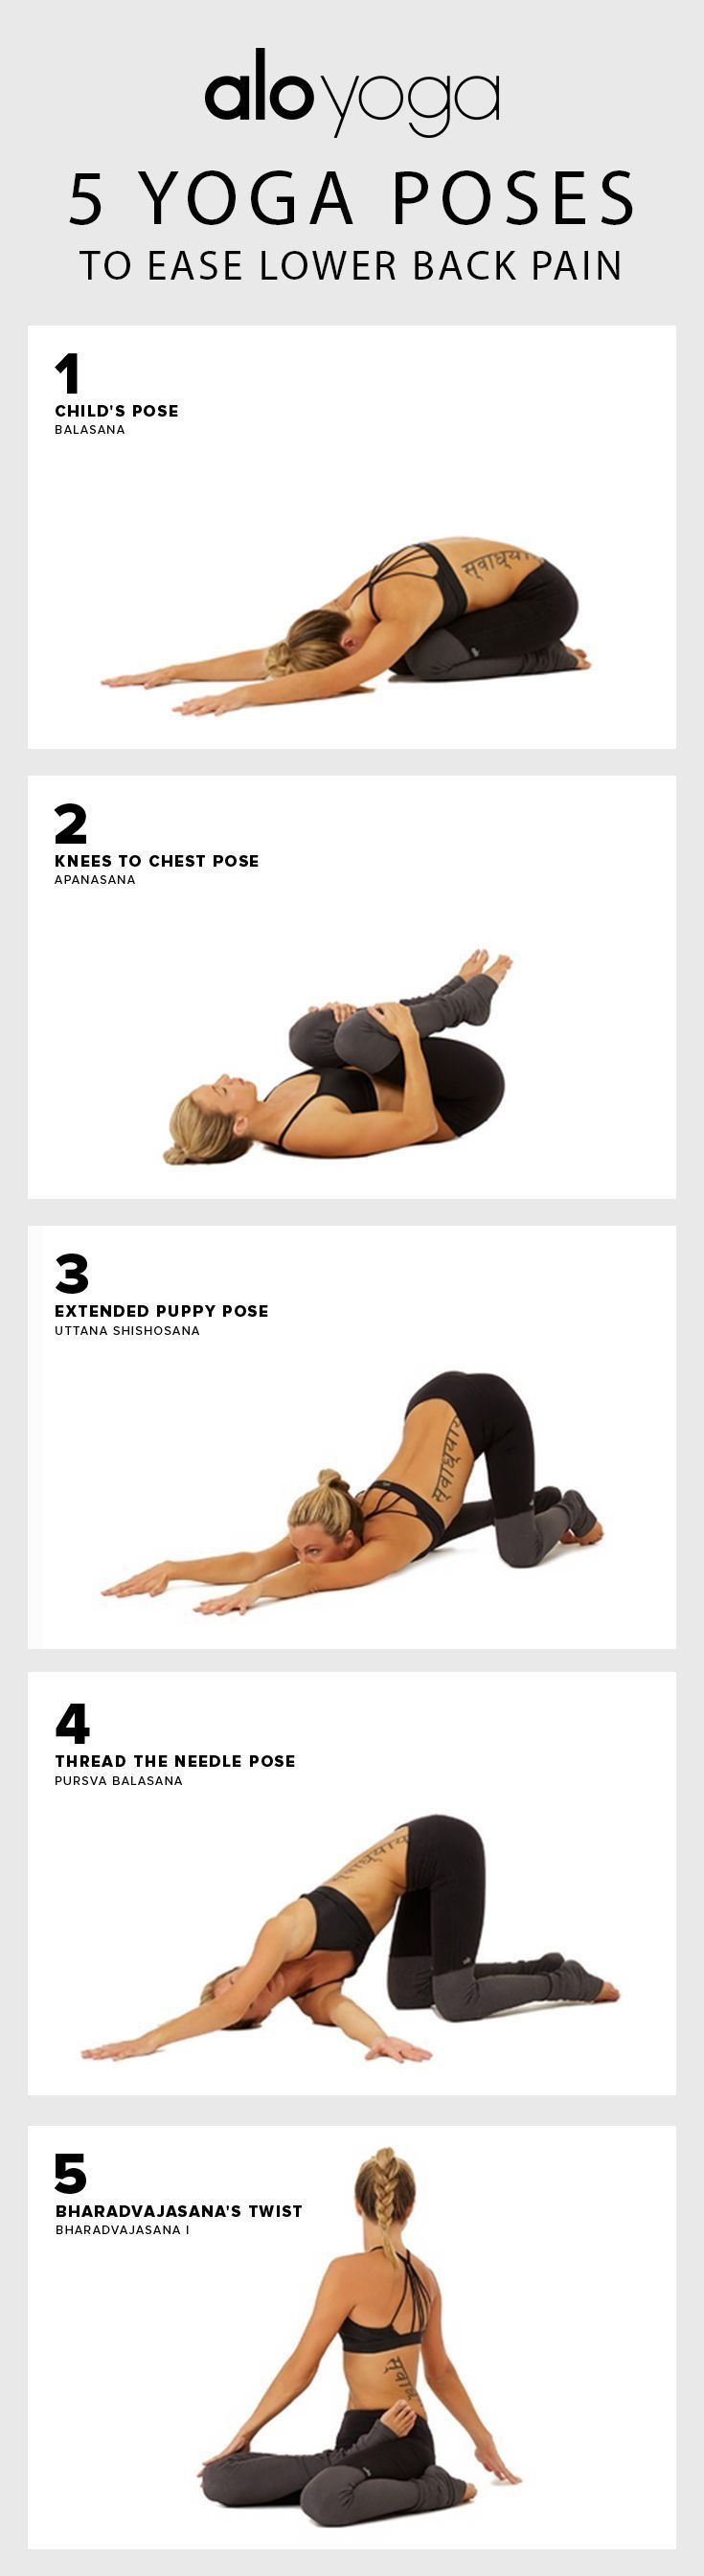 yoga poses to help back pain  Follow us for more. Her Box is a monthly subscript…